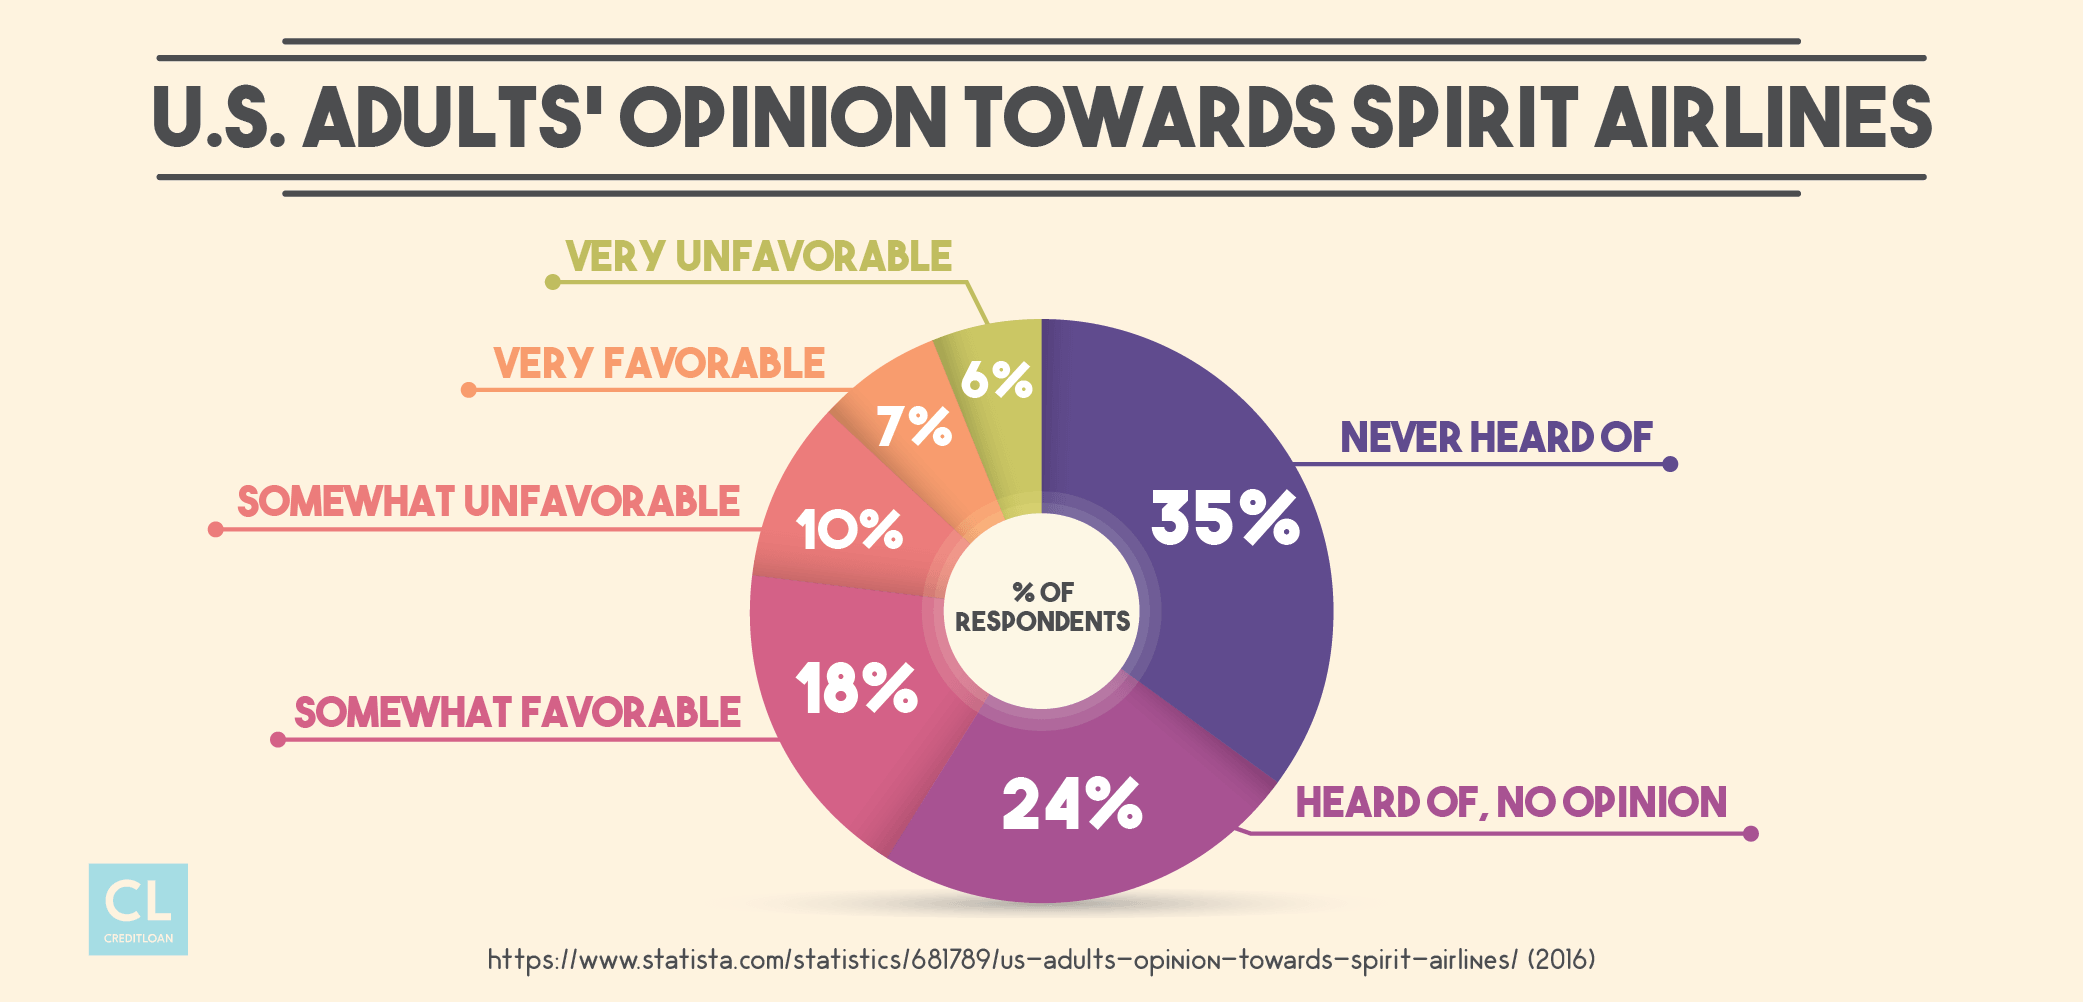 U.S. Adults' Opinion Towards Spirit Airlines